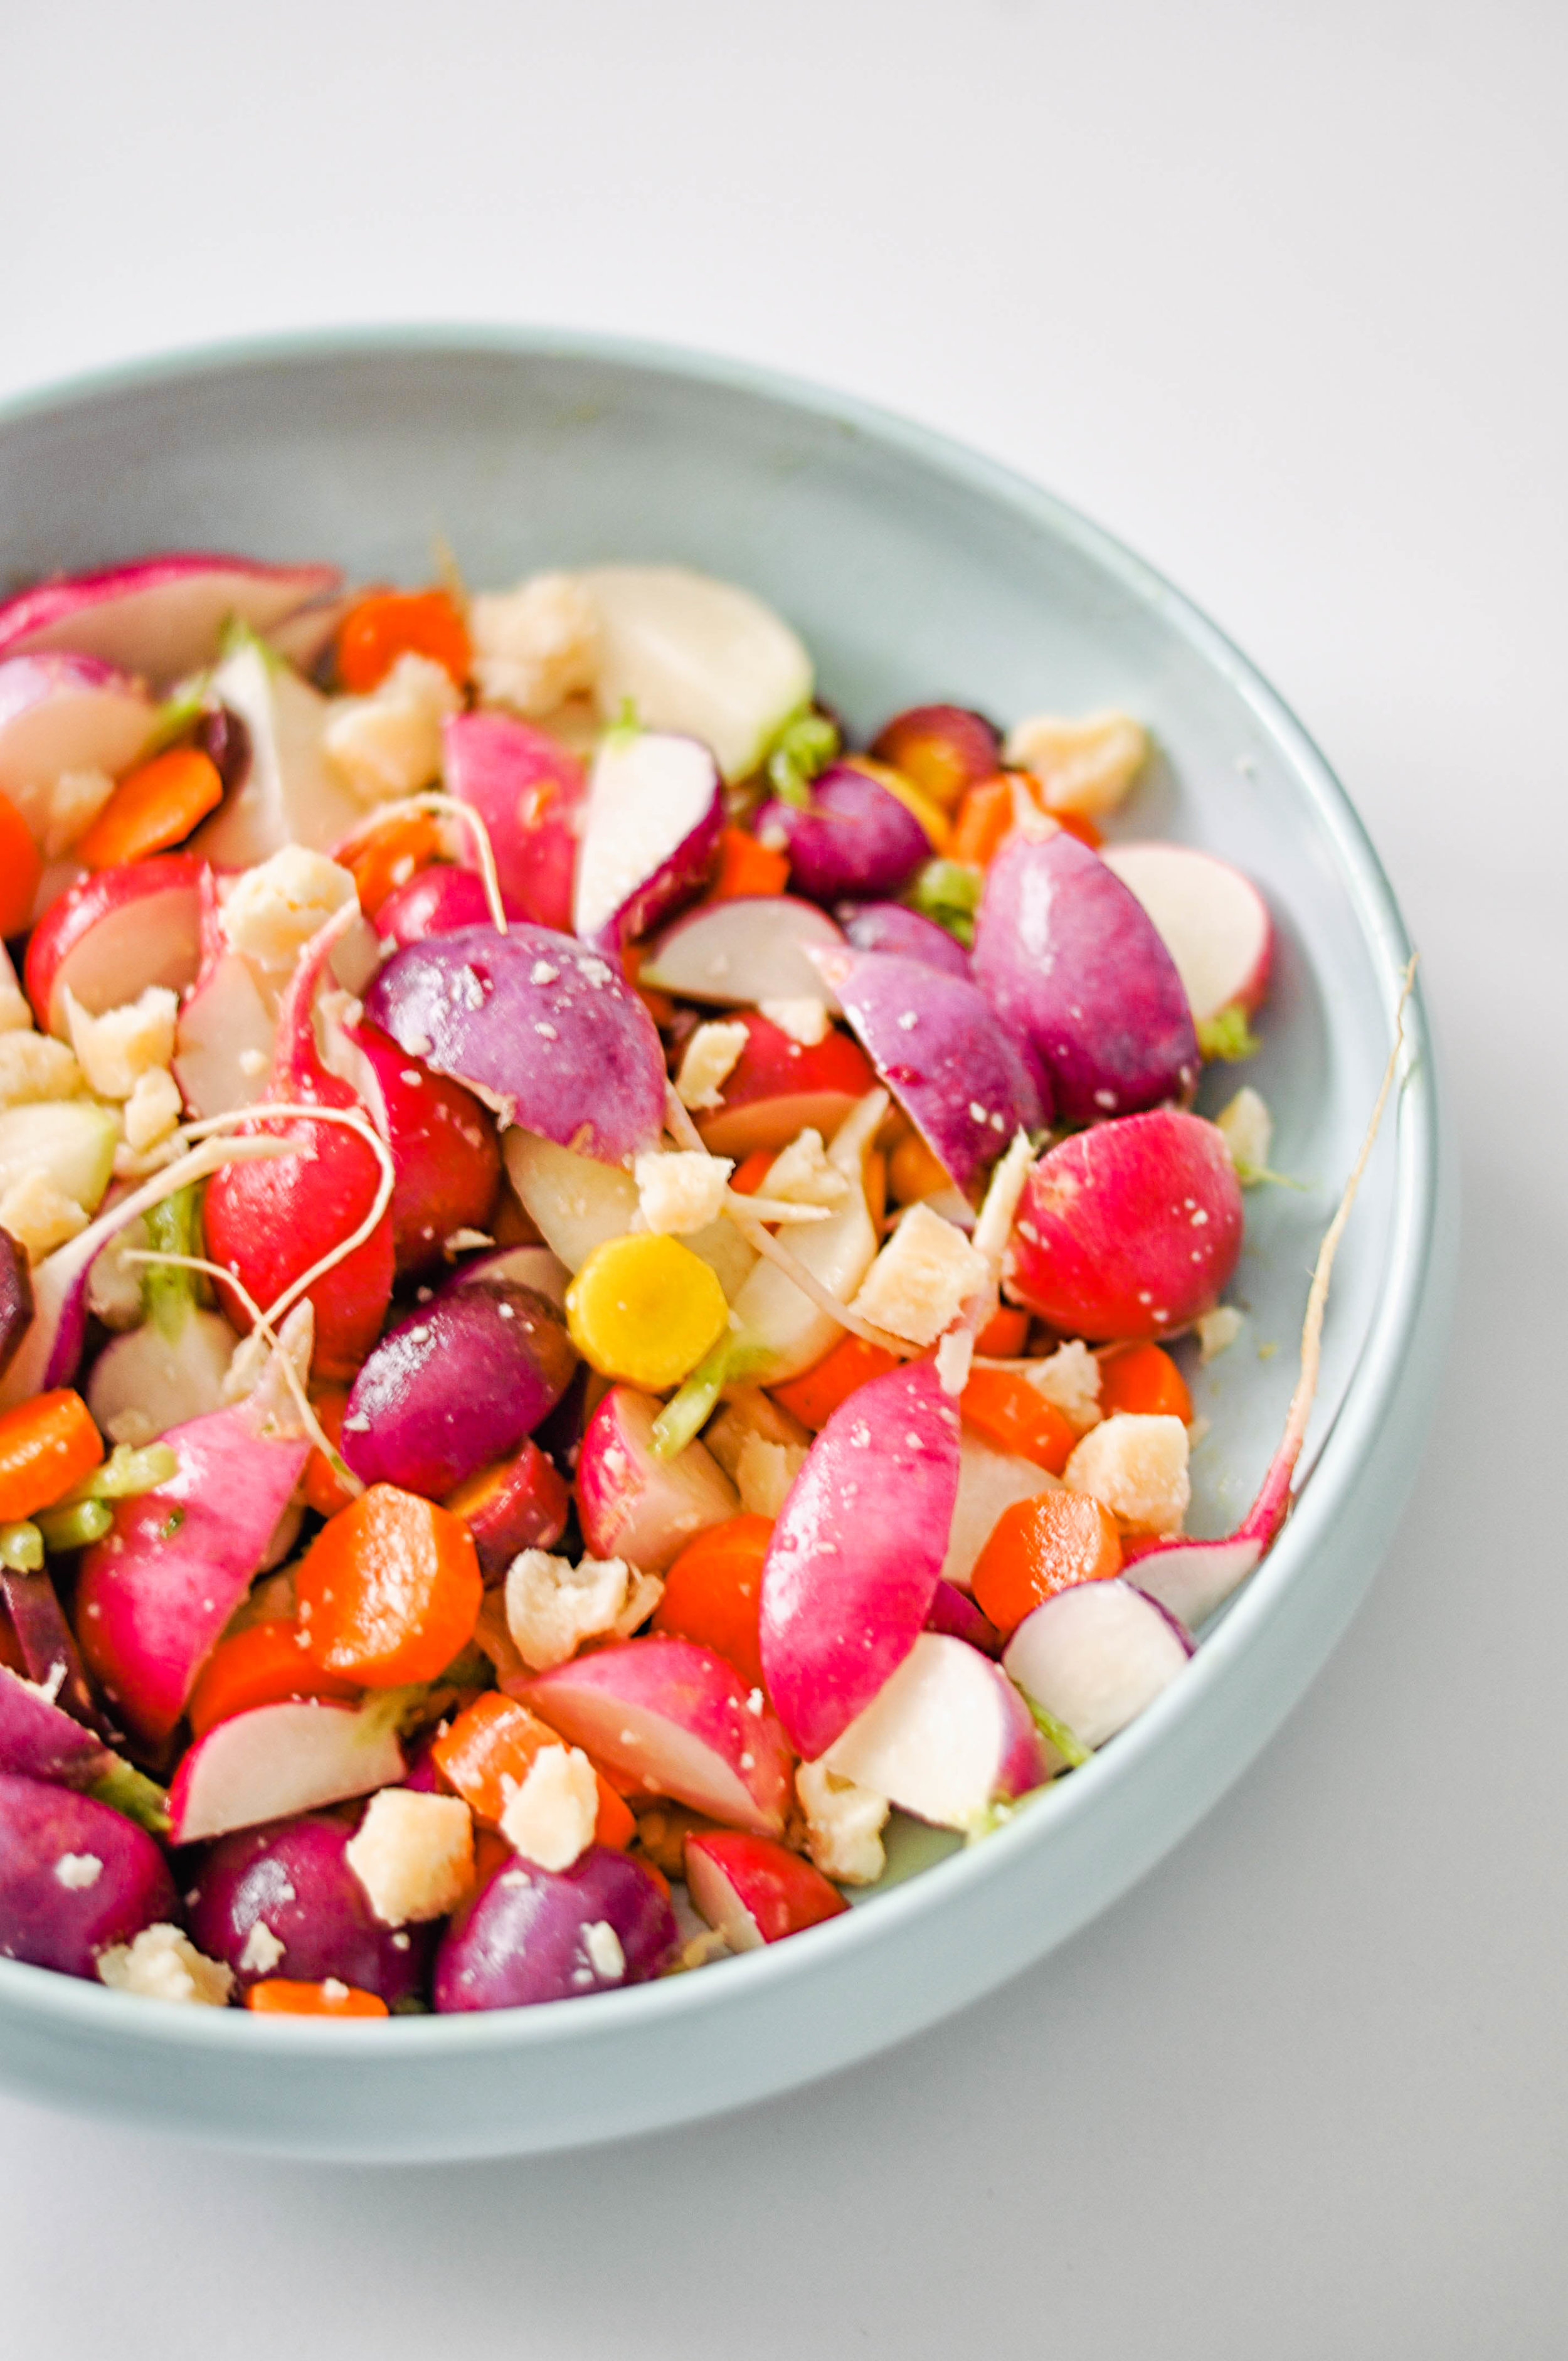 Radish and carrot salad with parmesan - a simple, vegetarian salad with fresh ingredients | This Healthy Table